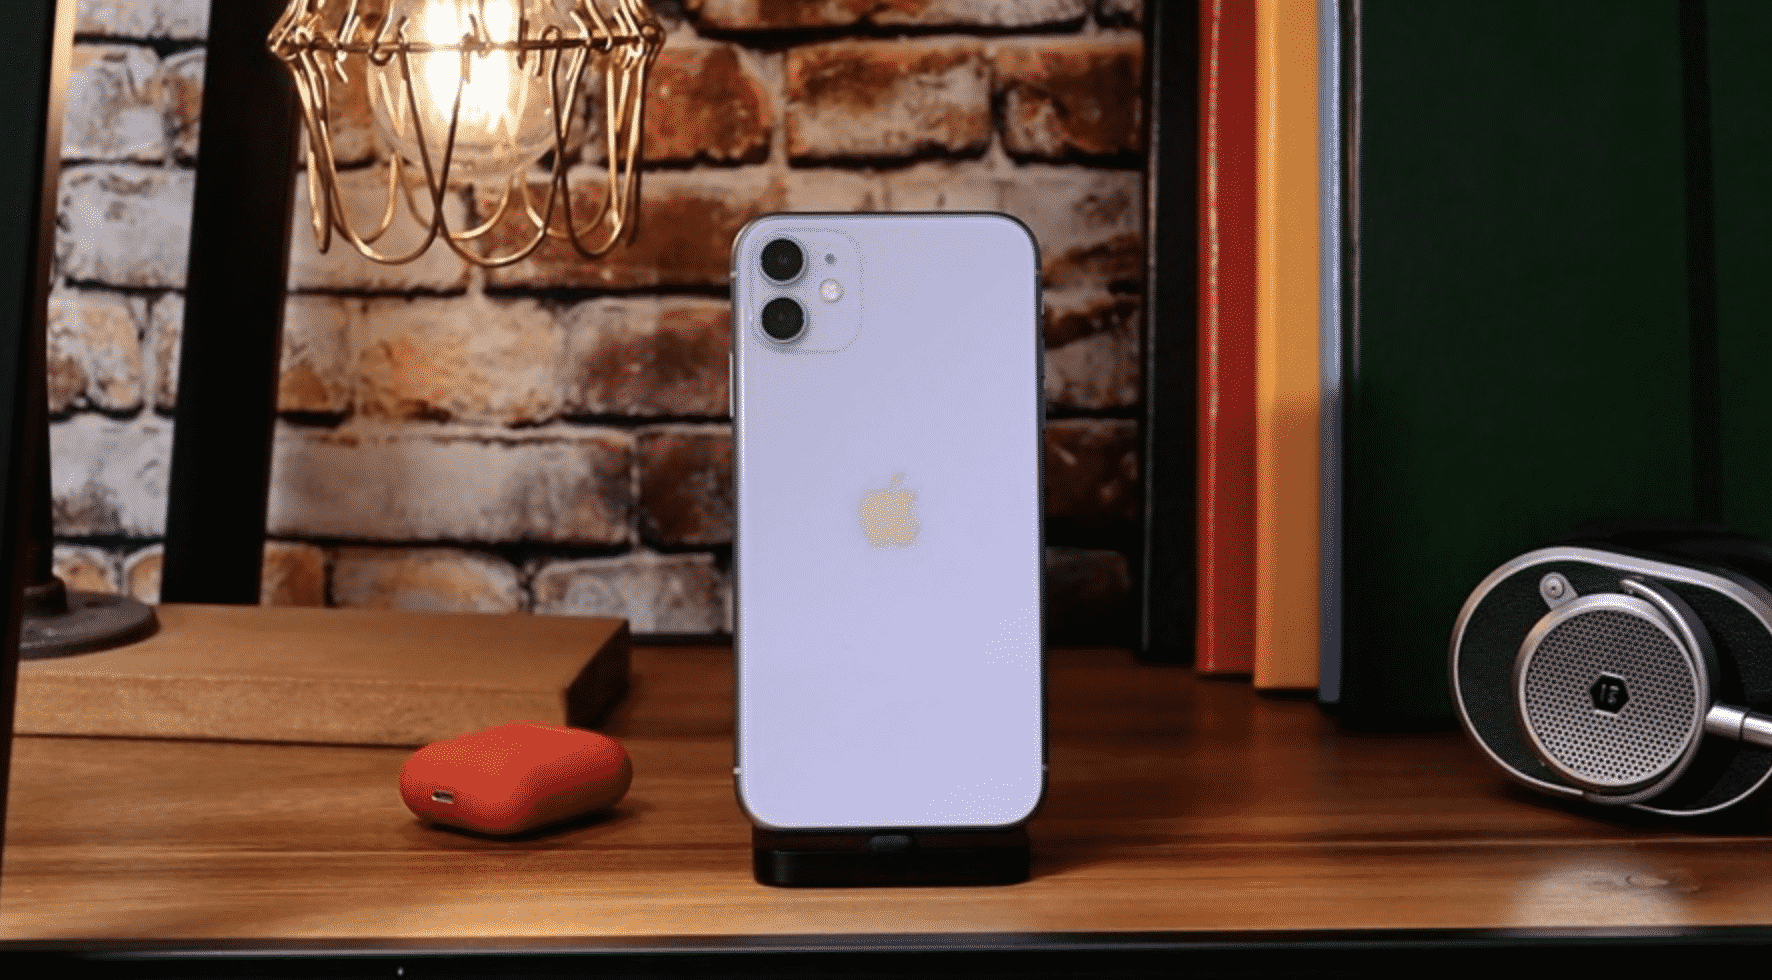 IPhone 11 Repair Plan: How to check if your device is compatible